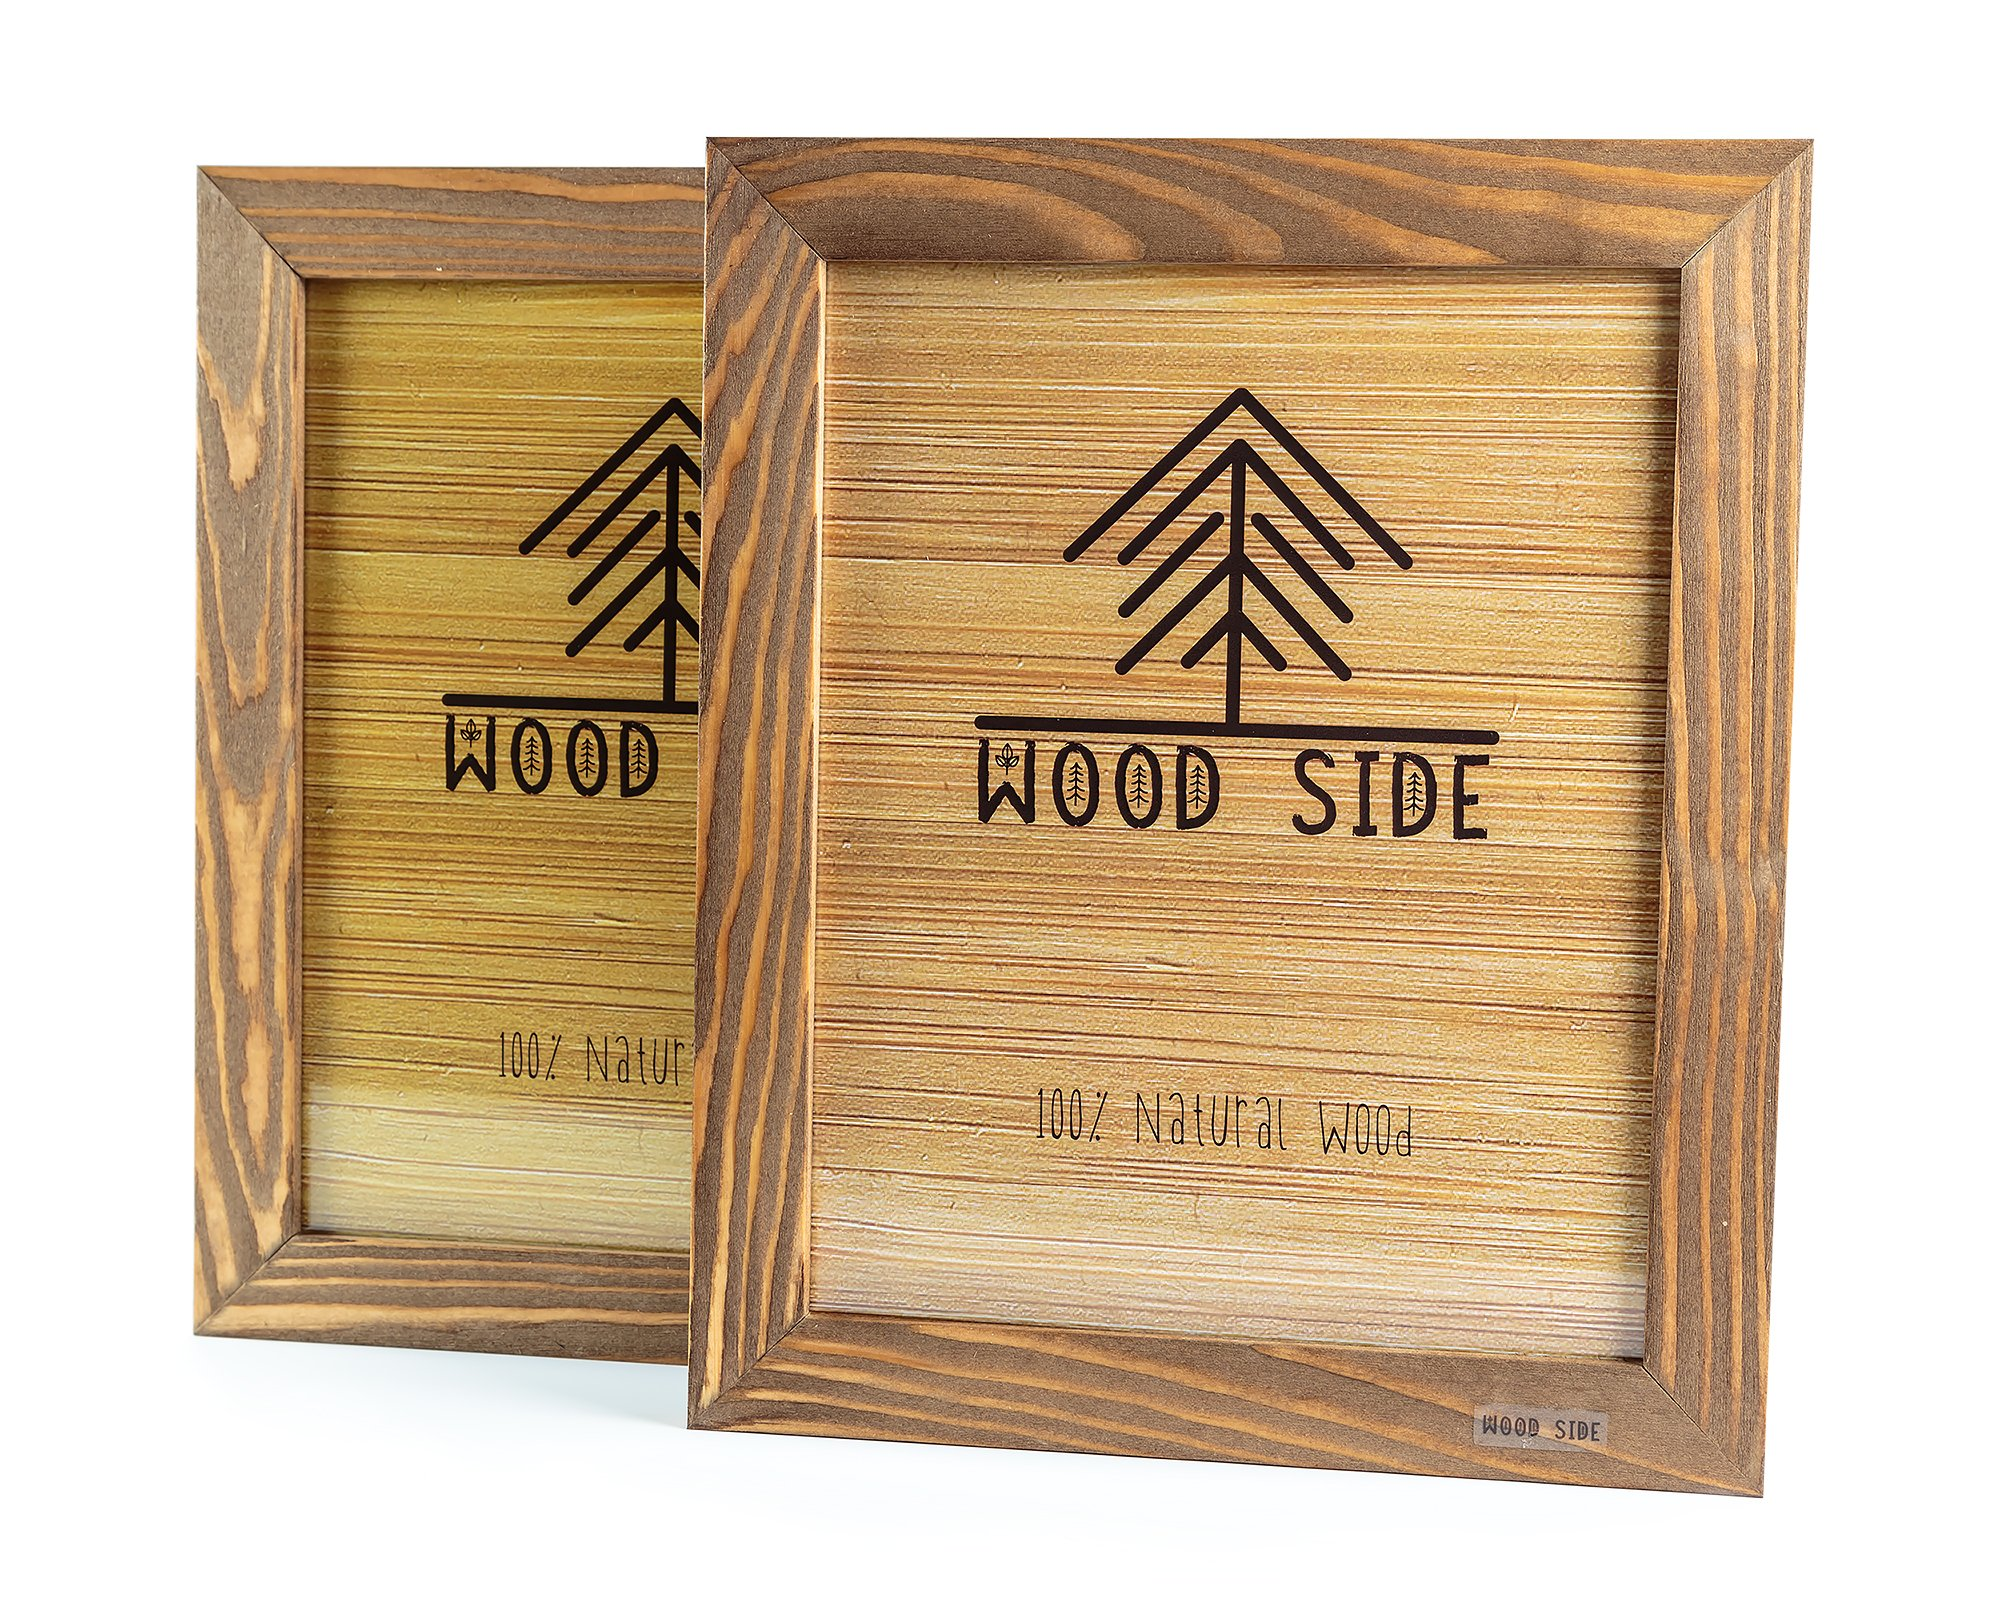 Rustic Wooden Picture Frame 8x10 - Made to Display Pictures 8x10 - Set of 2-100% Natural Eco Wood with Real Glass for Wall Mounting Photo Frame - Walnut by Wood side